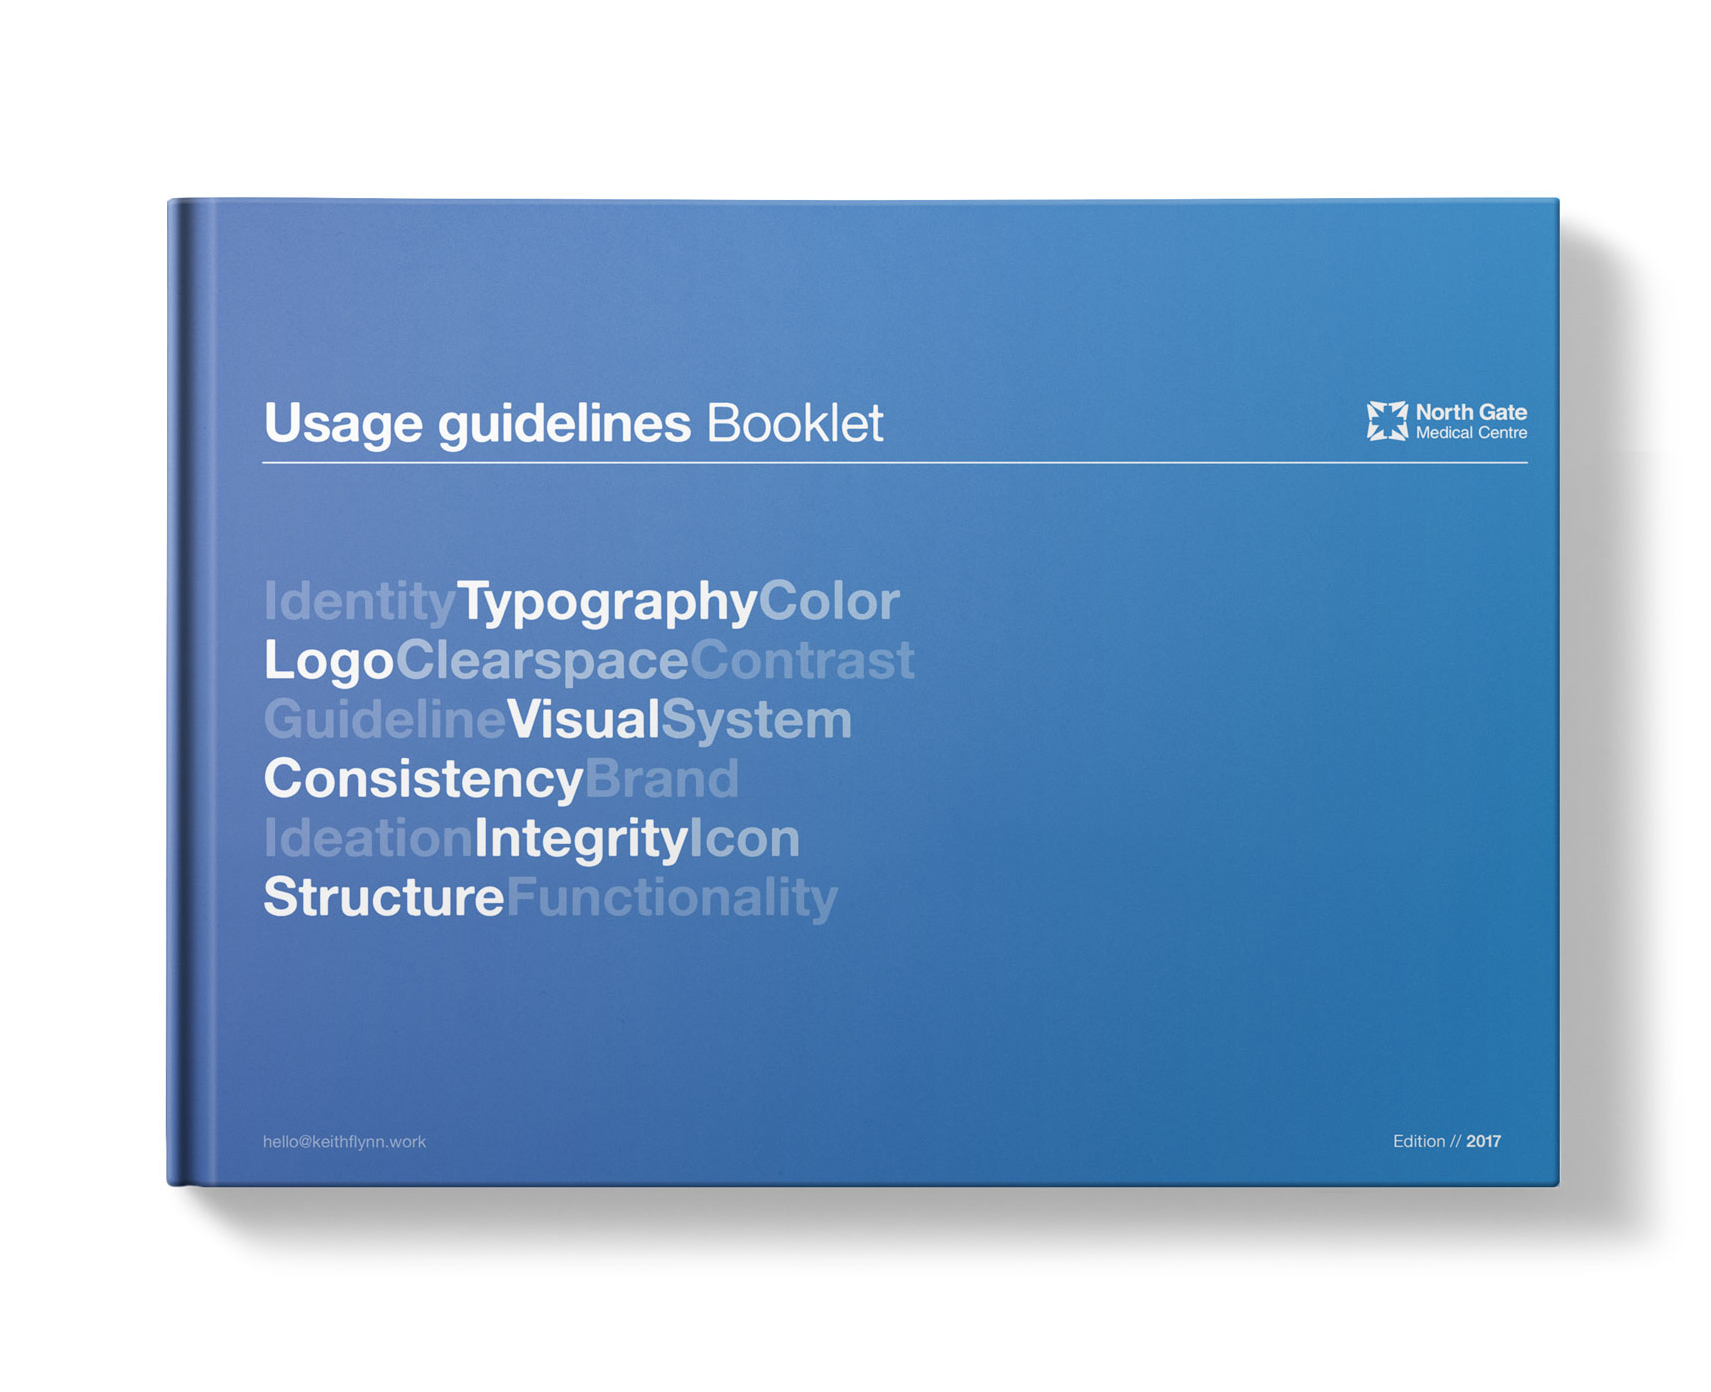 brand-guidelines-booklet copy